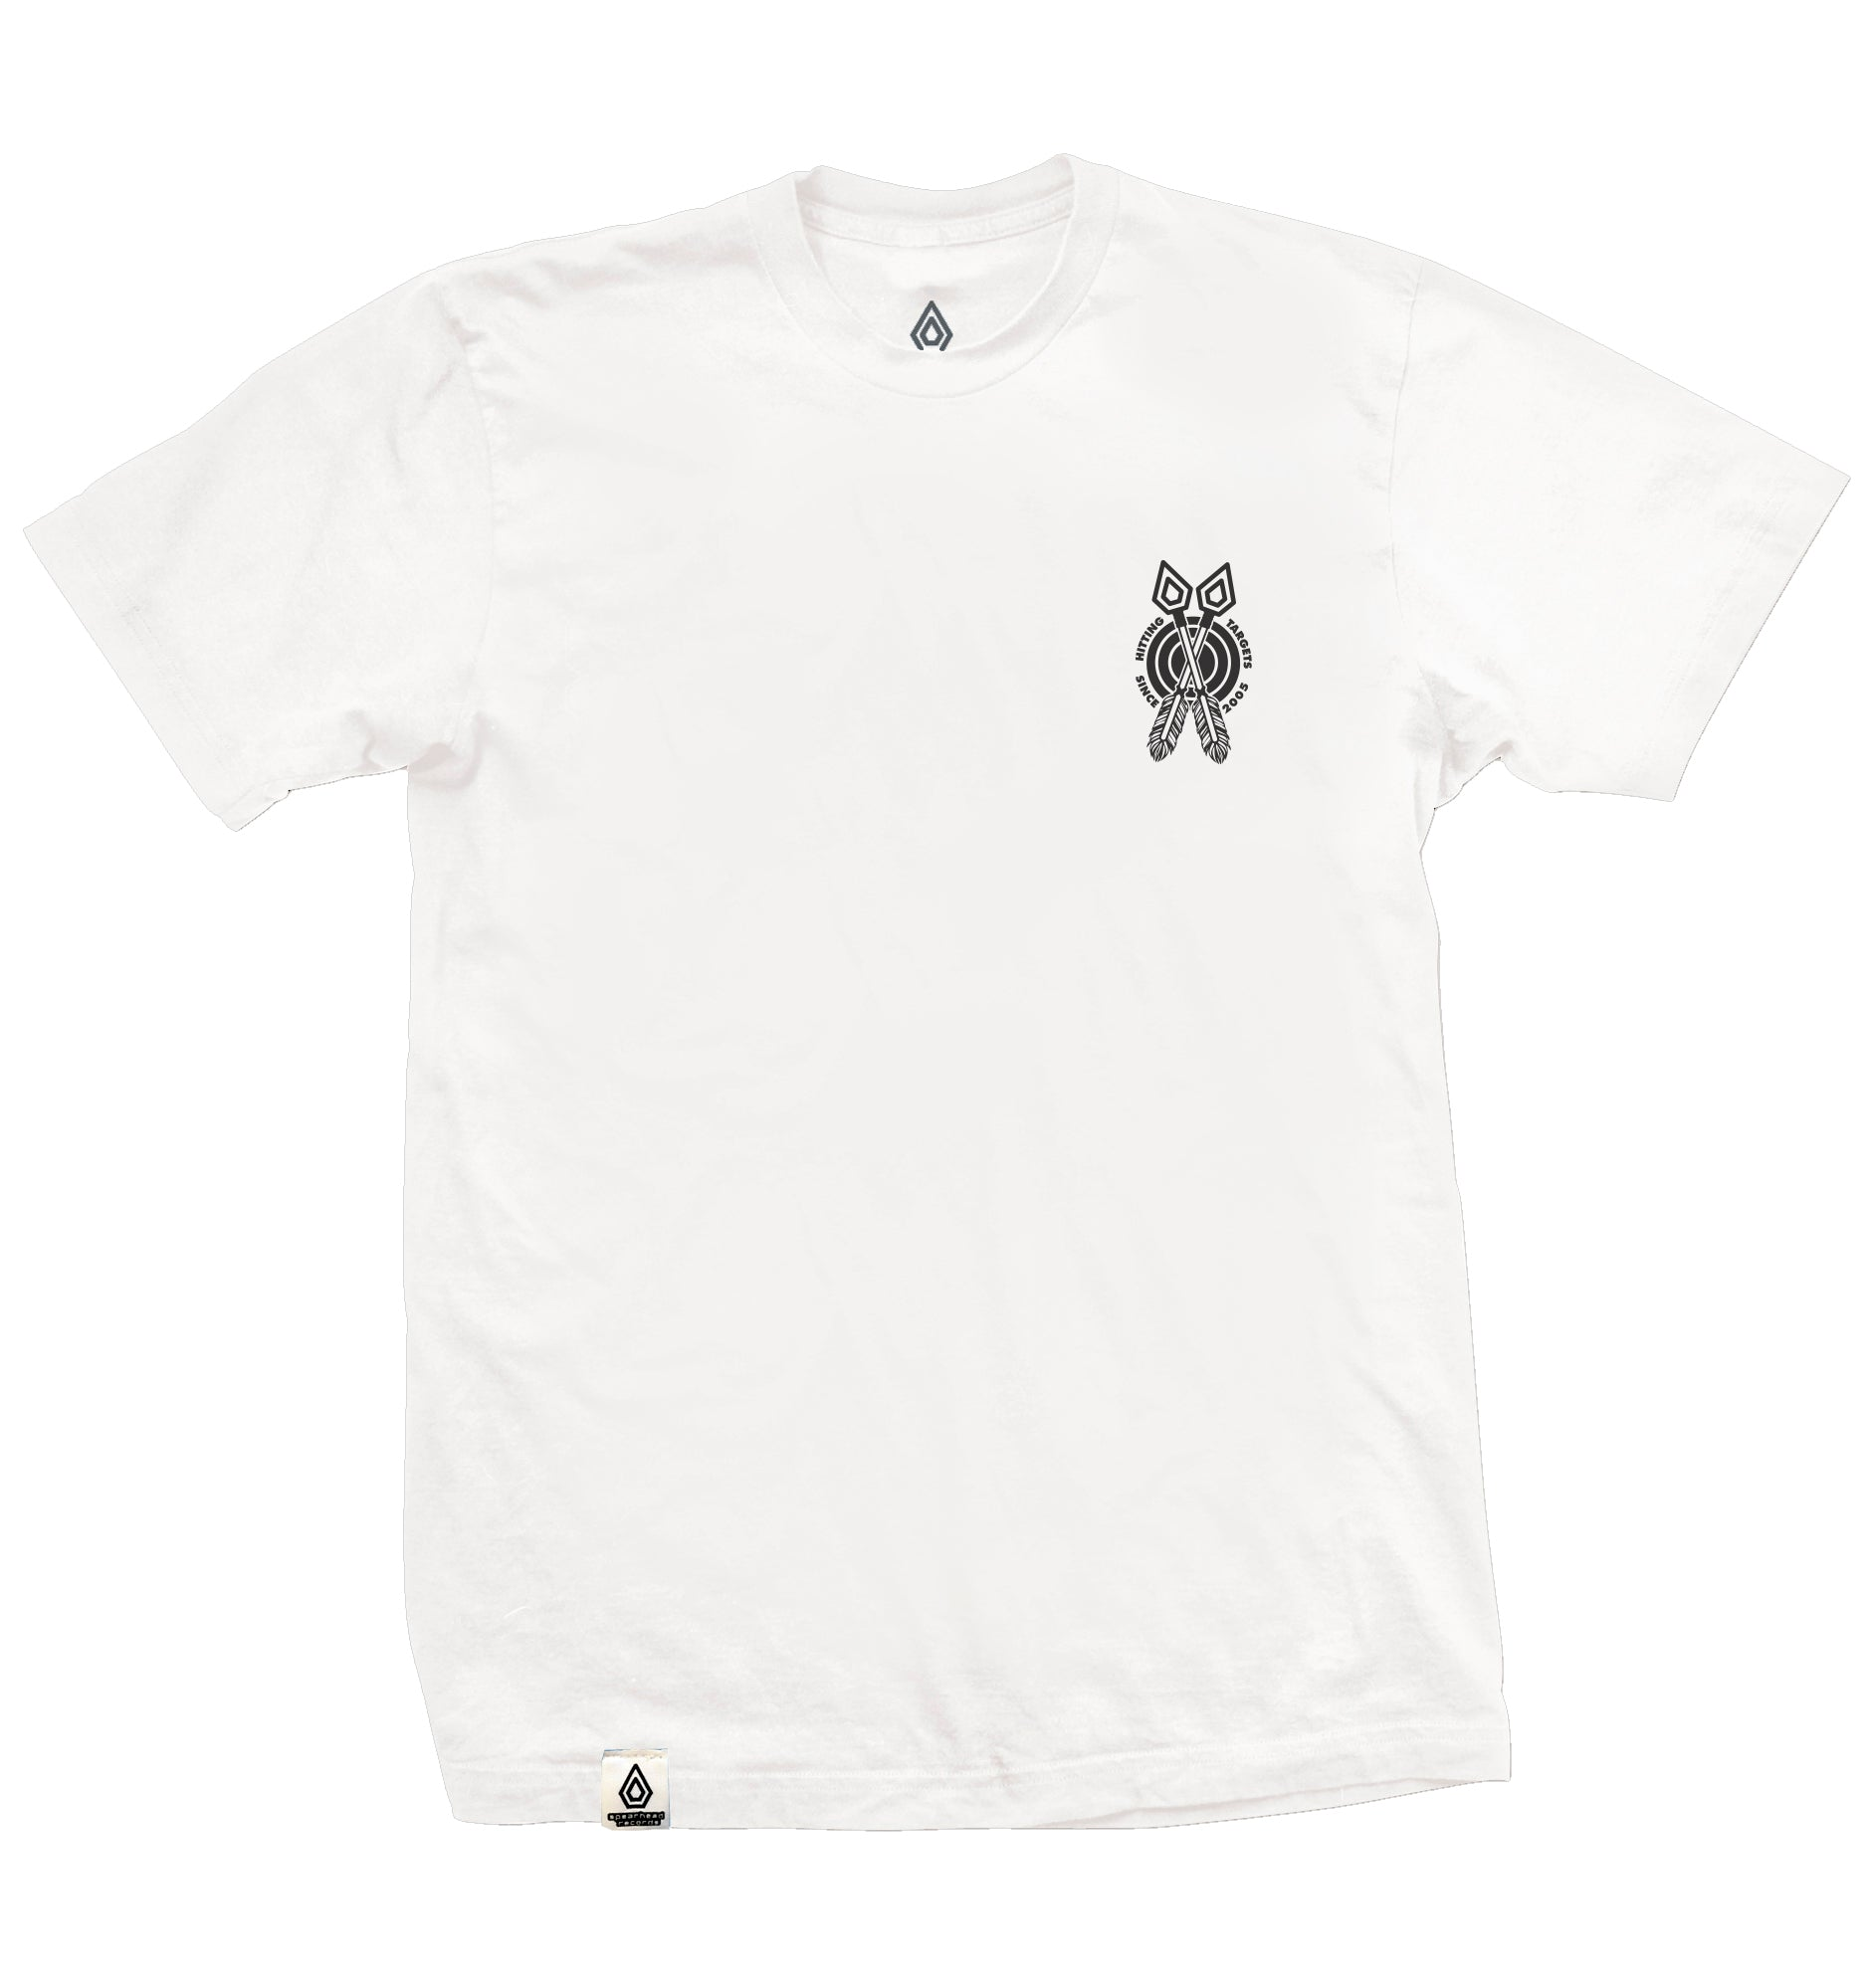 Spearhead 'Target' T-Shirt with back print - White with black print.